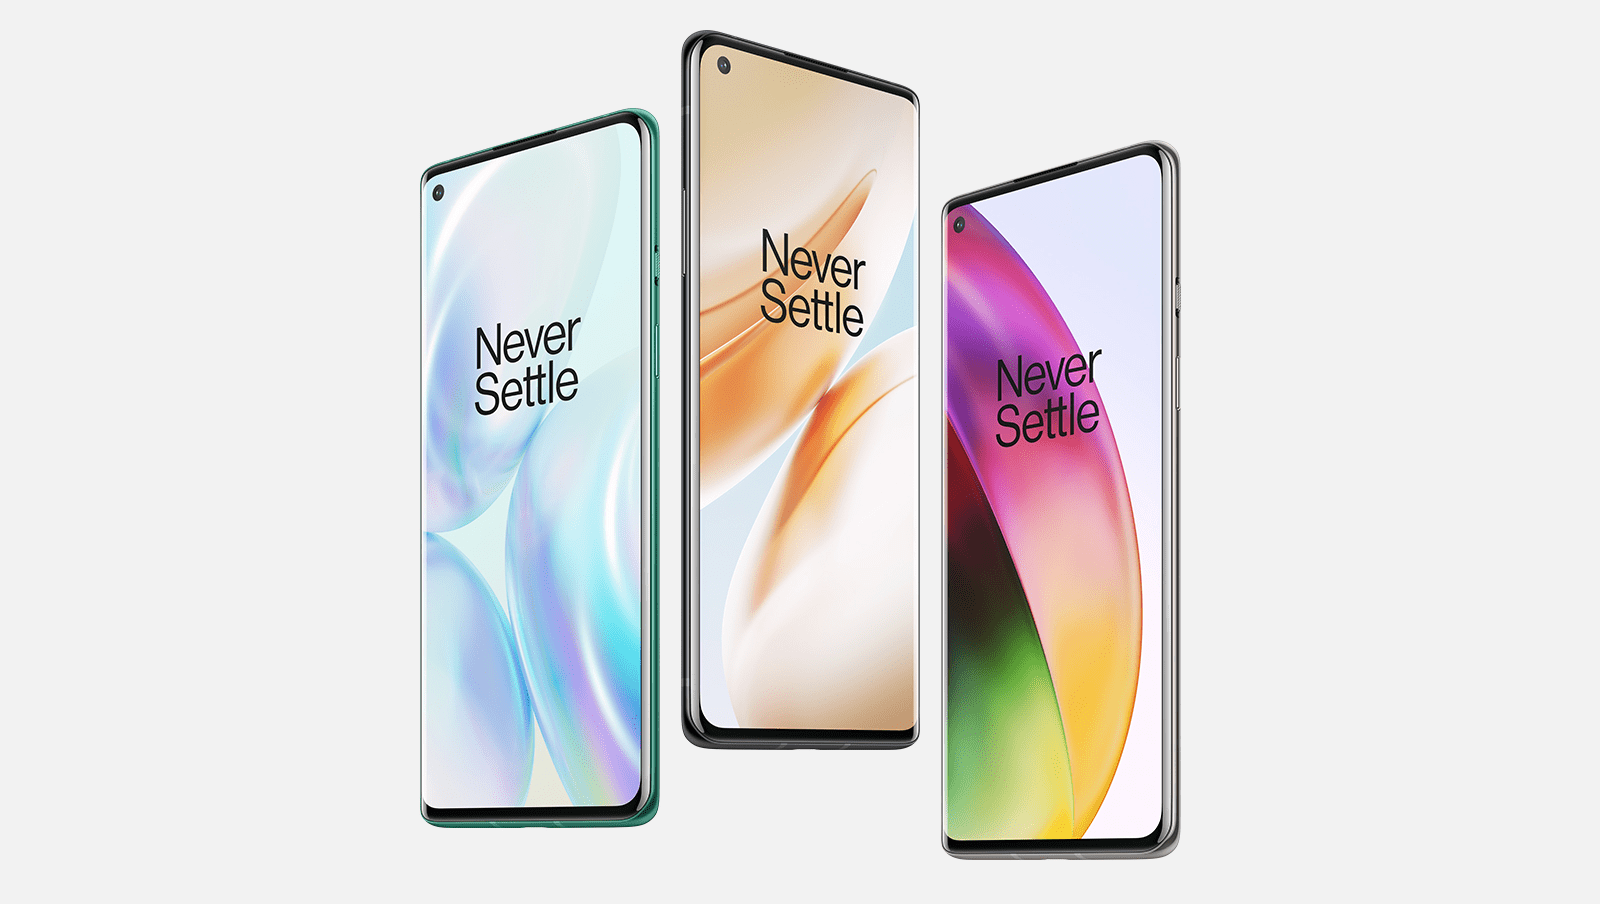 OnePlus 8 phones in different colors